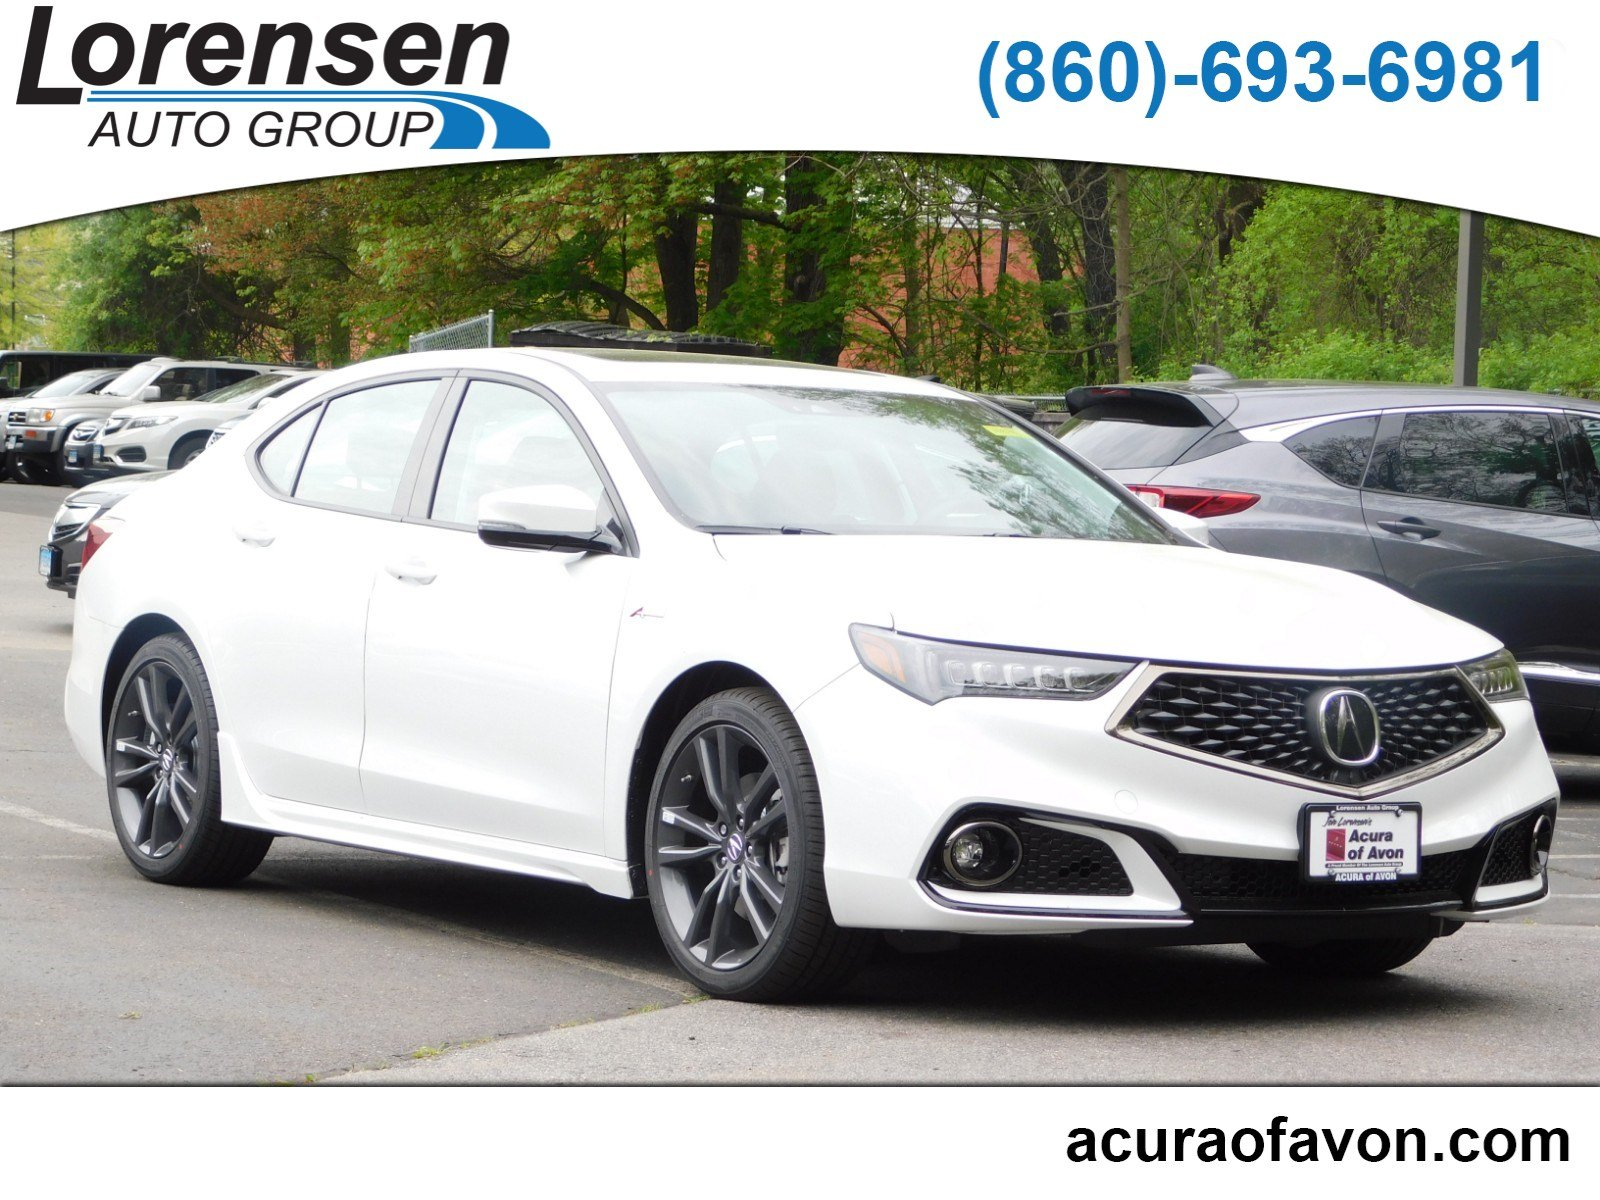 2020 Acura TLX with A-Spec Package and Red Interior